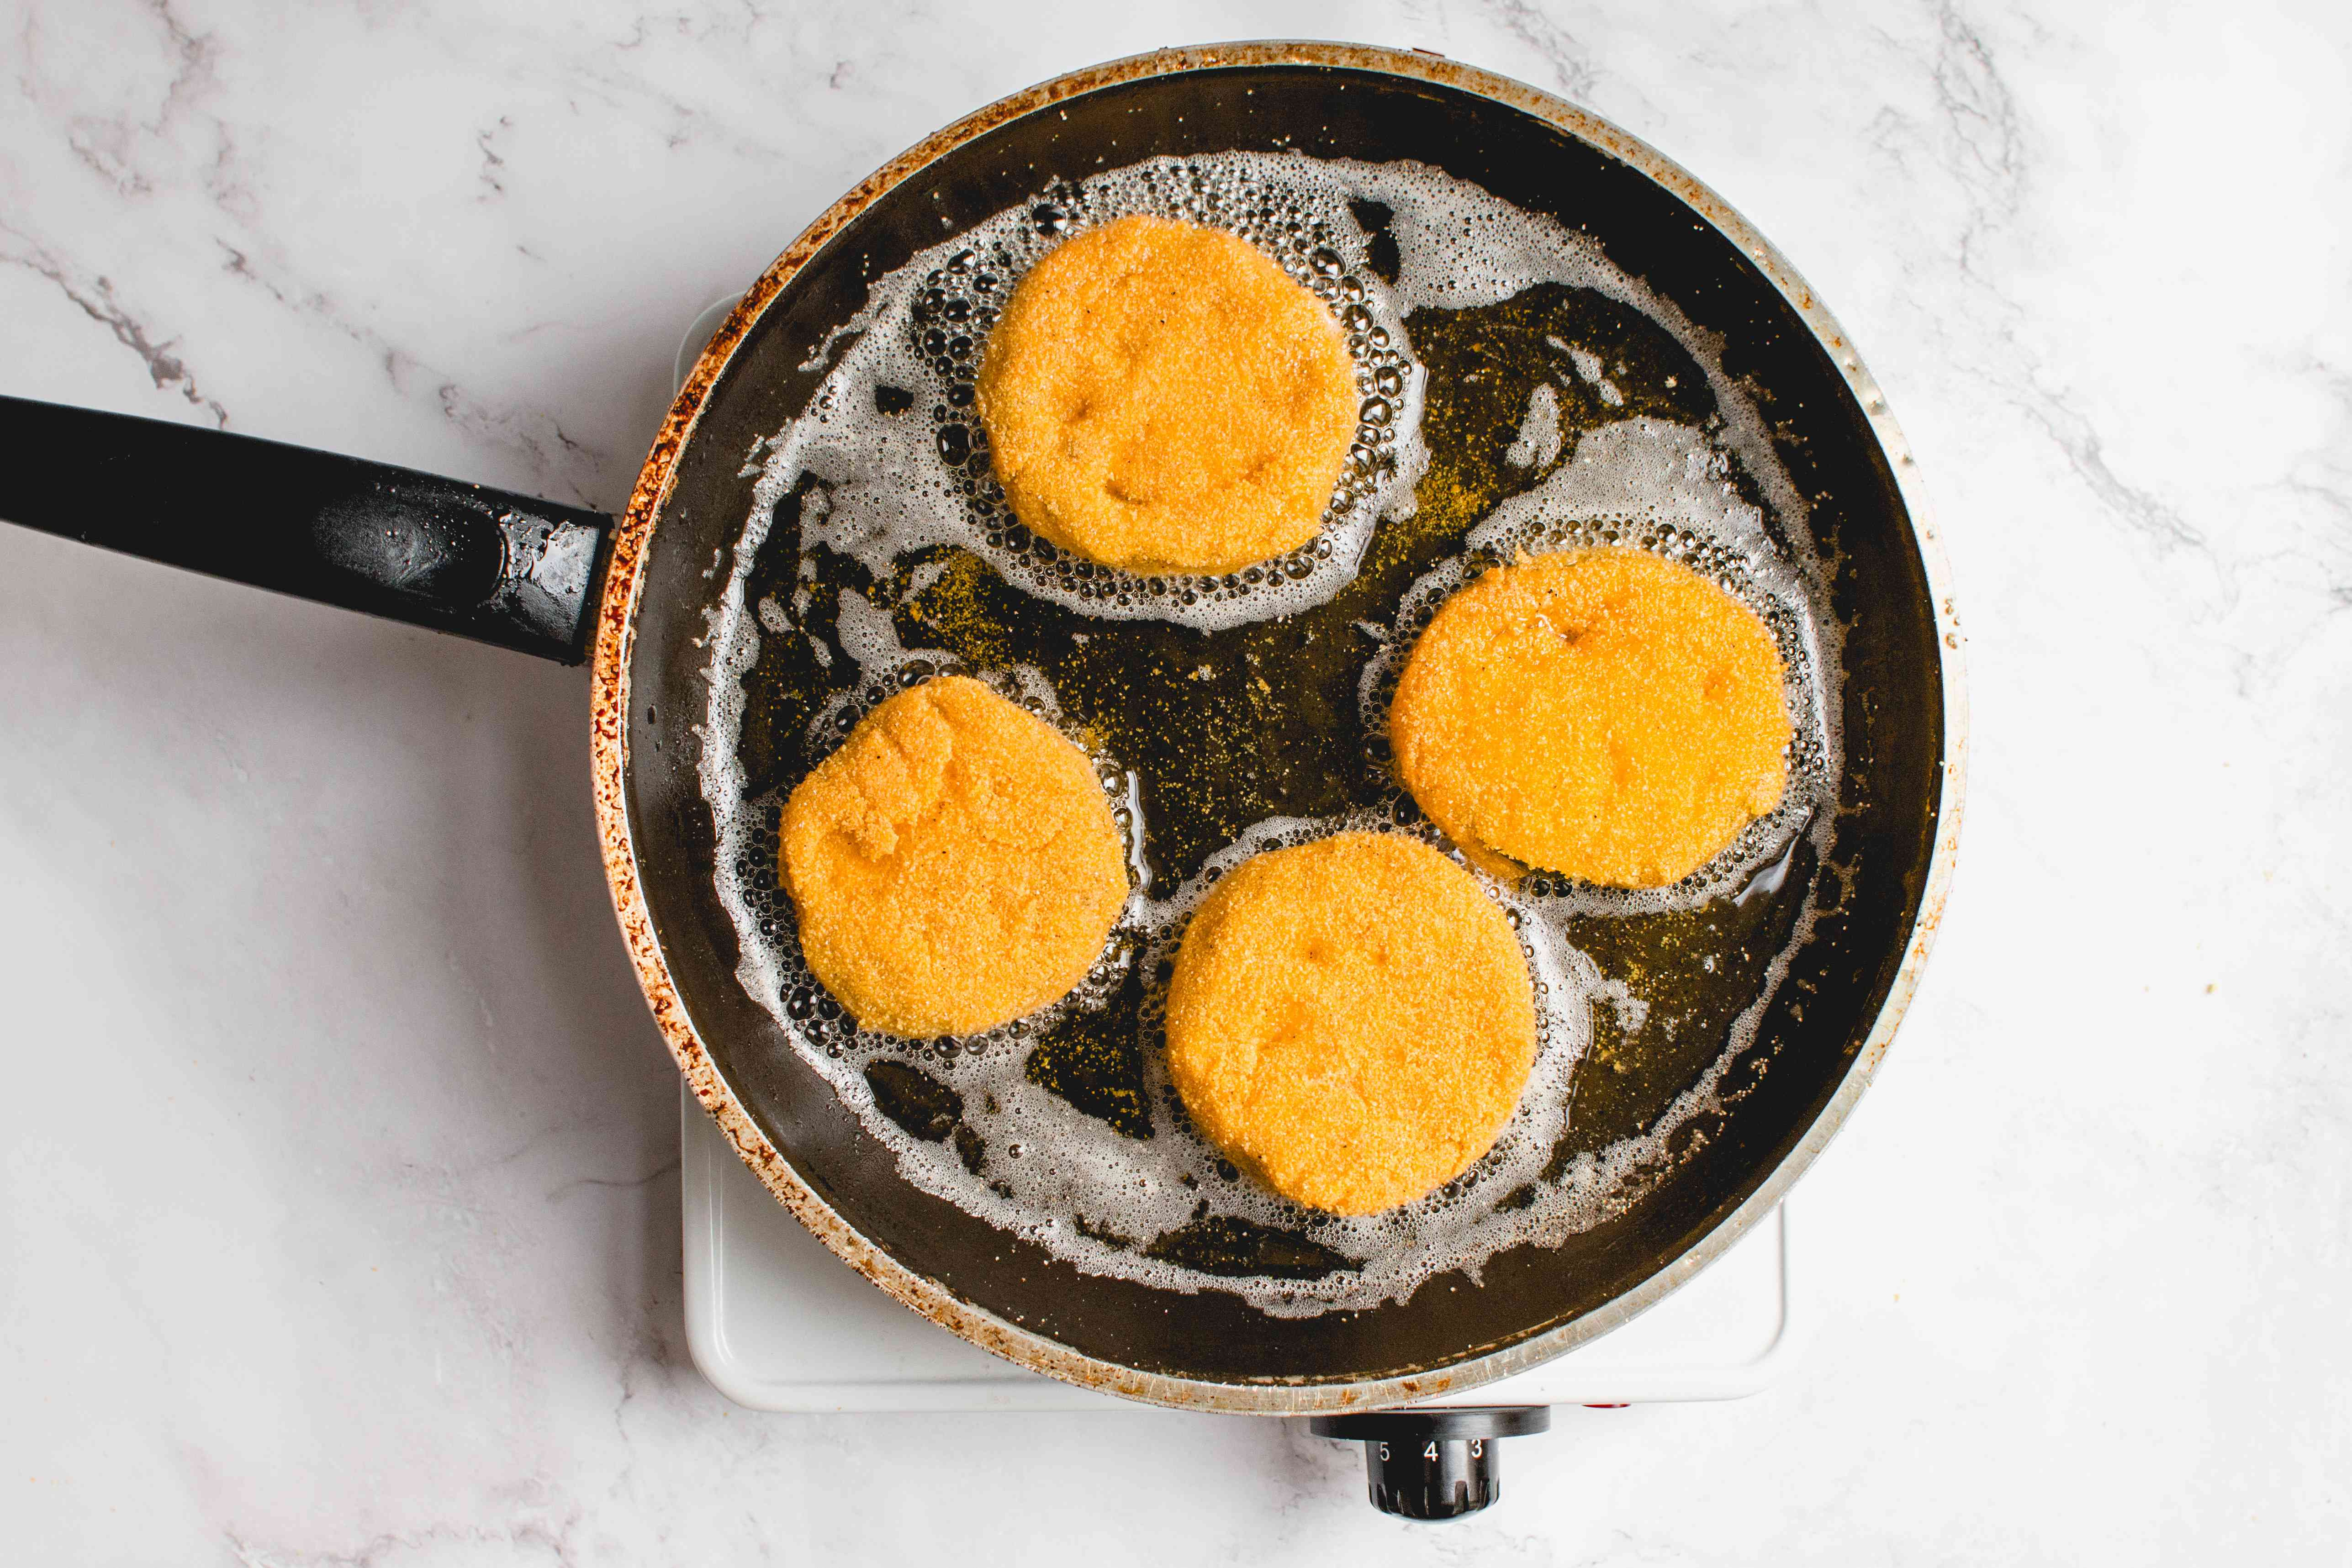 frying cornmeal coated tomatoes in the skillet